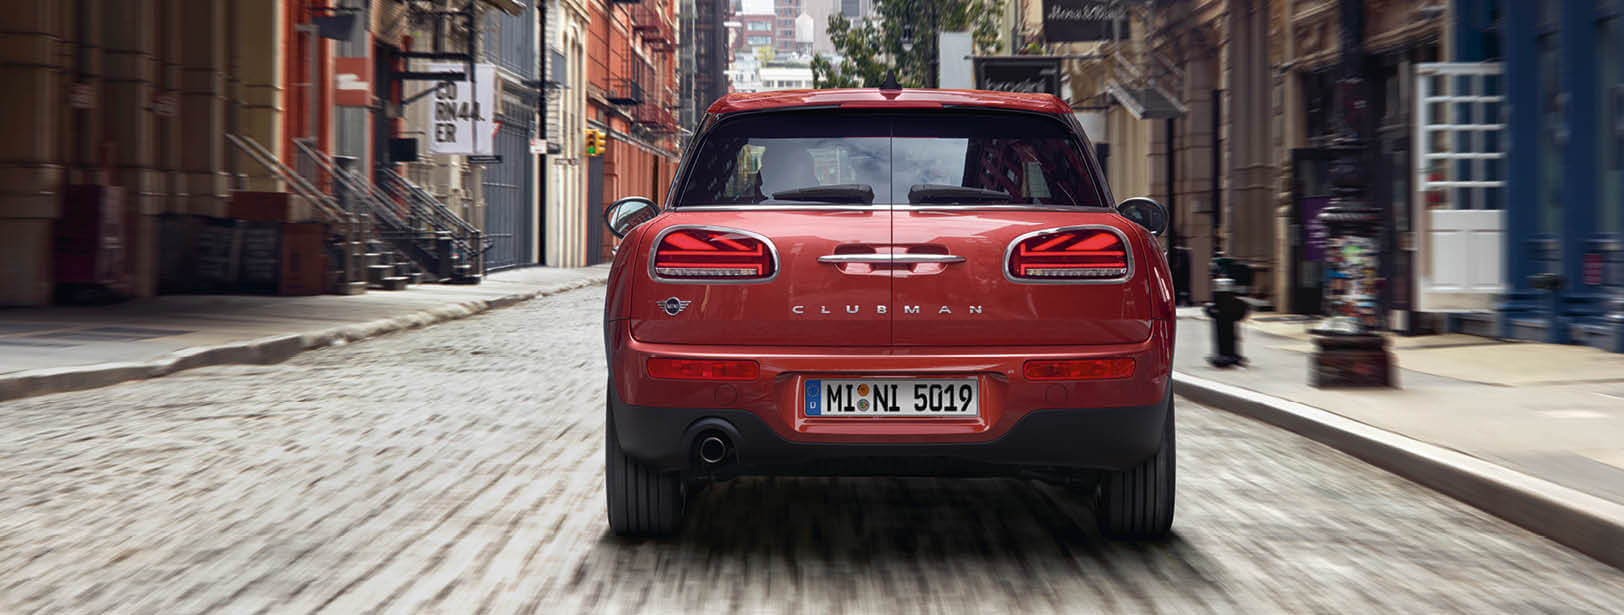 DER MINI COOPER CLUBMAN.: OPTIONAL: MINI SMILE VOLLKASKOVERSICHERUNG⁵